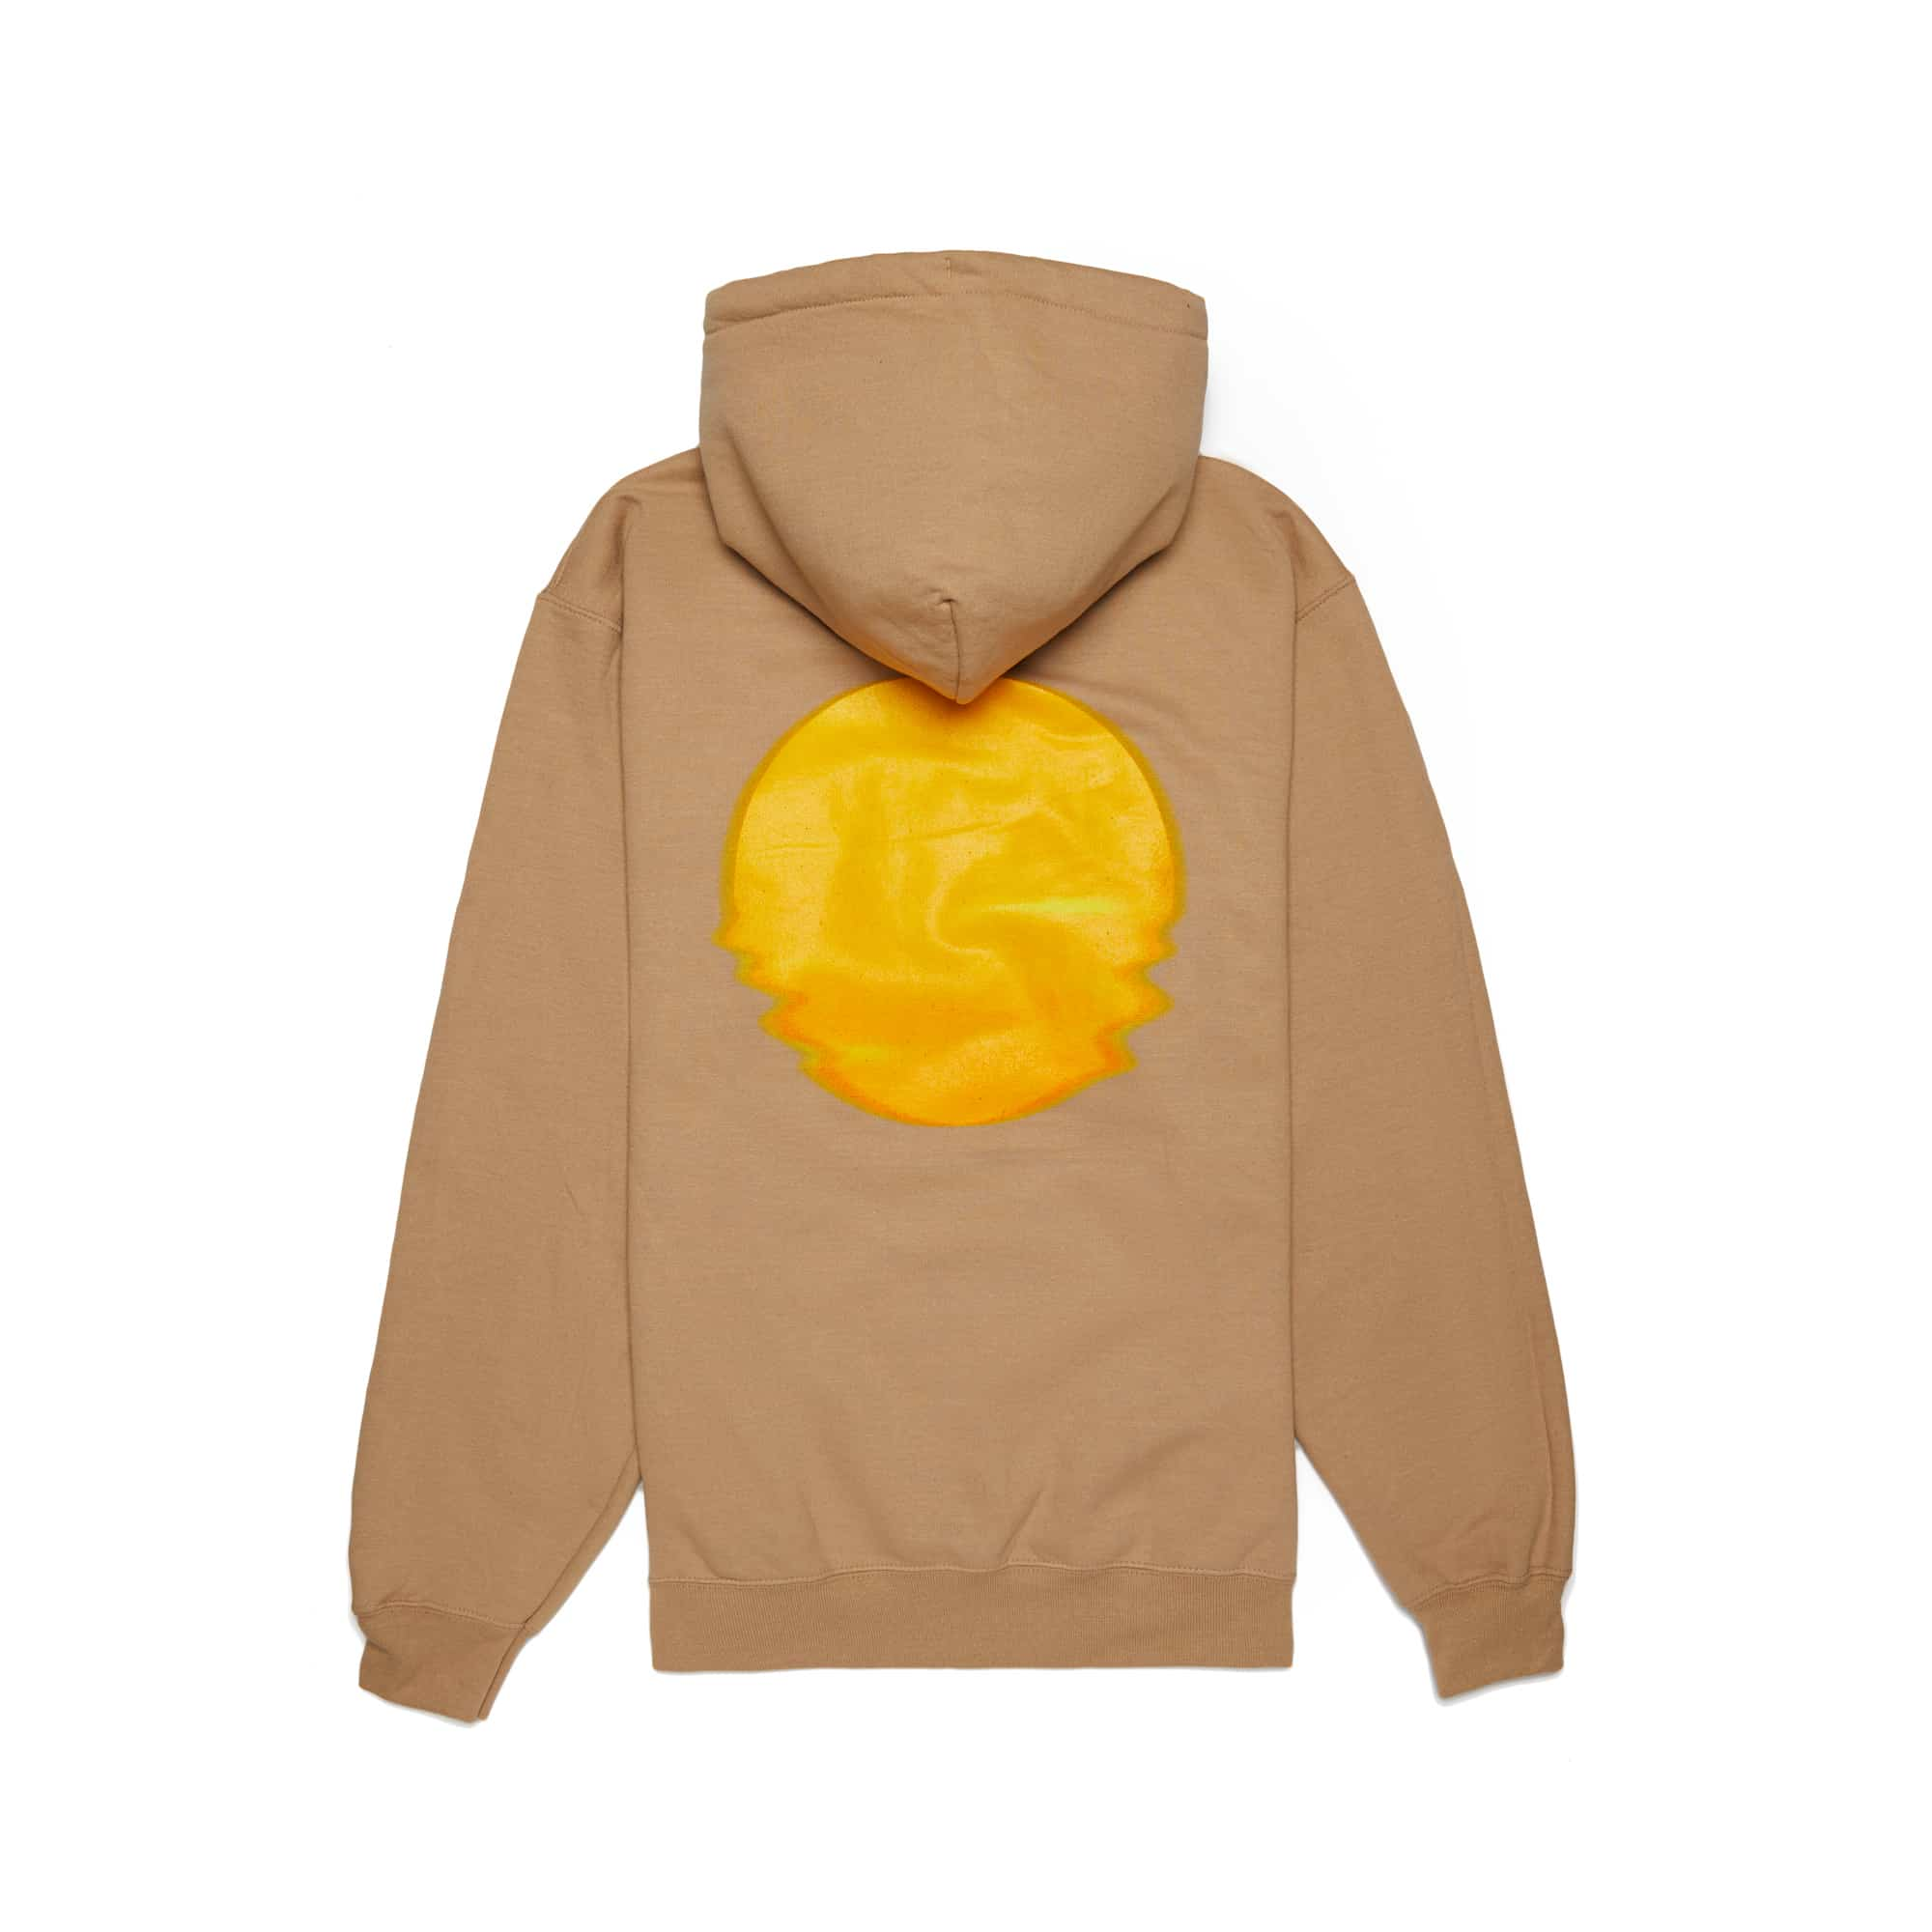 'Suncity' Pull Over Hoodie + Digital Download - Sand